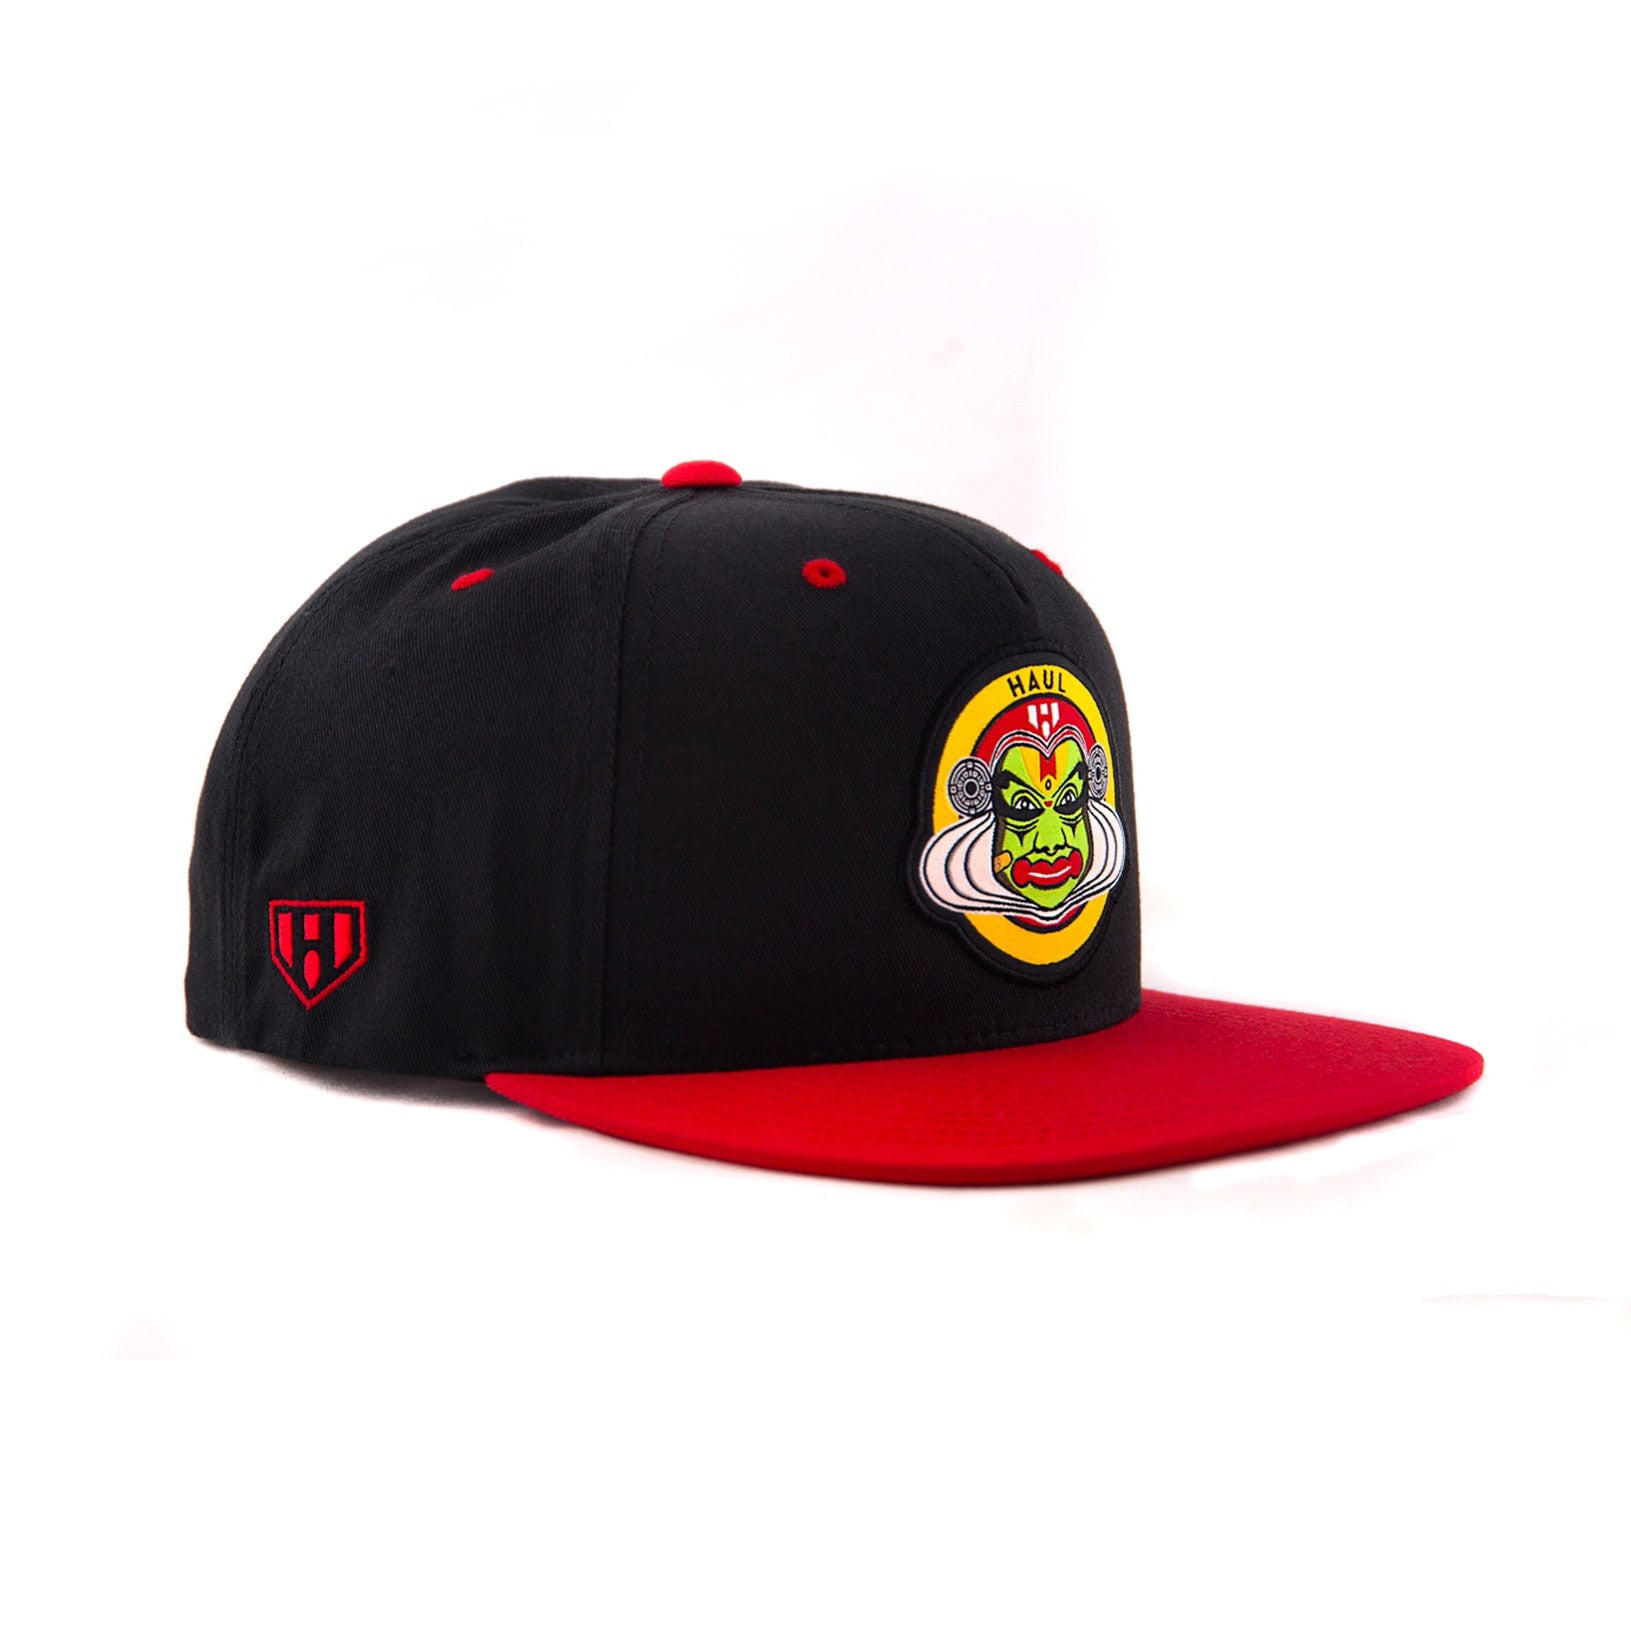 e4e339428be546 Buy Indian Kathakali Caps in india online ( Haul Apparel ) Red & Black  Colour